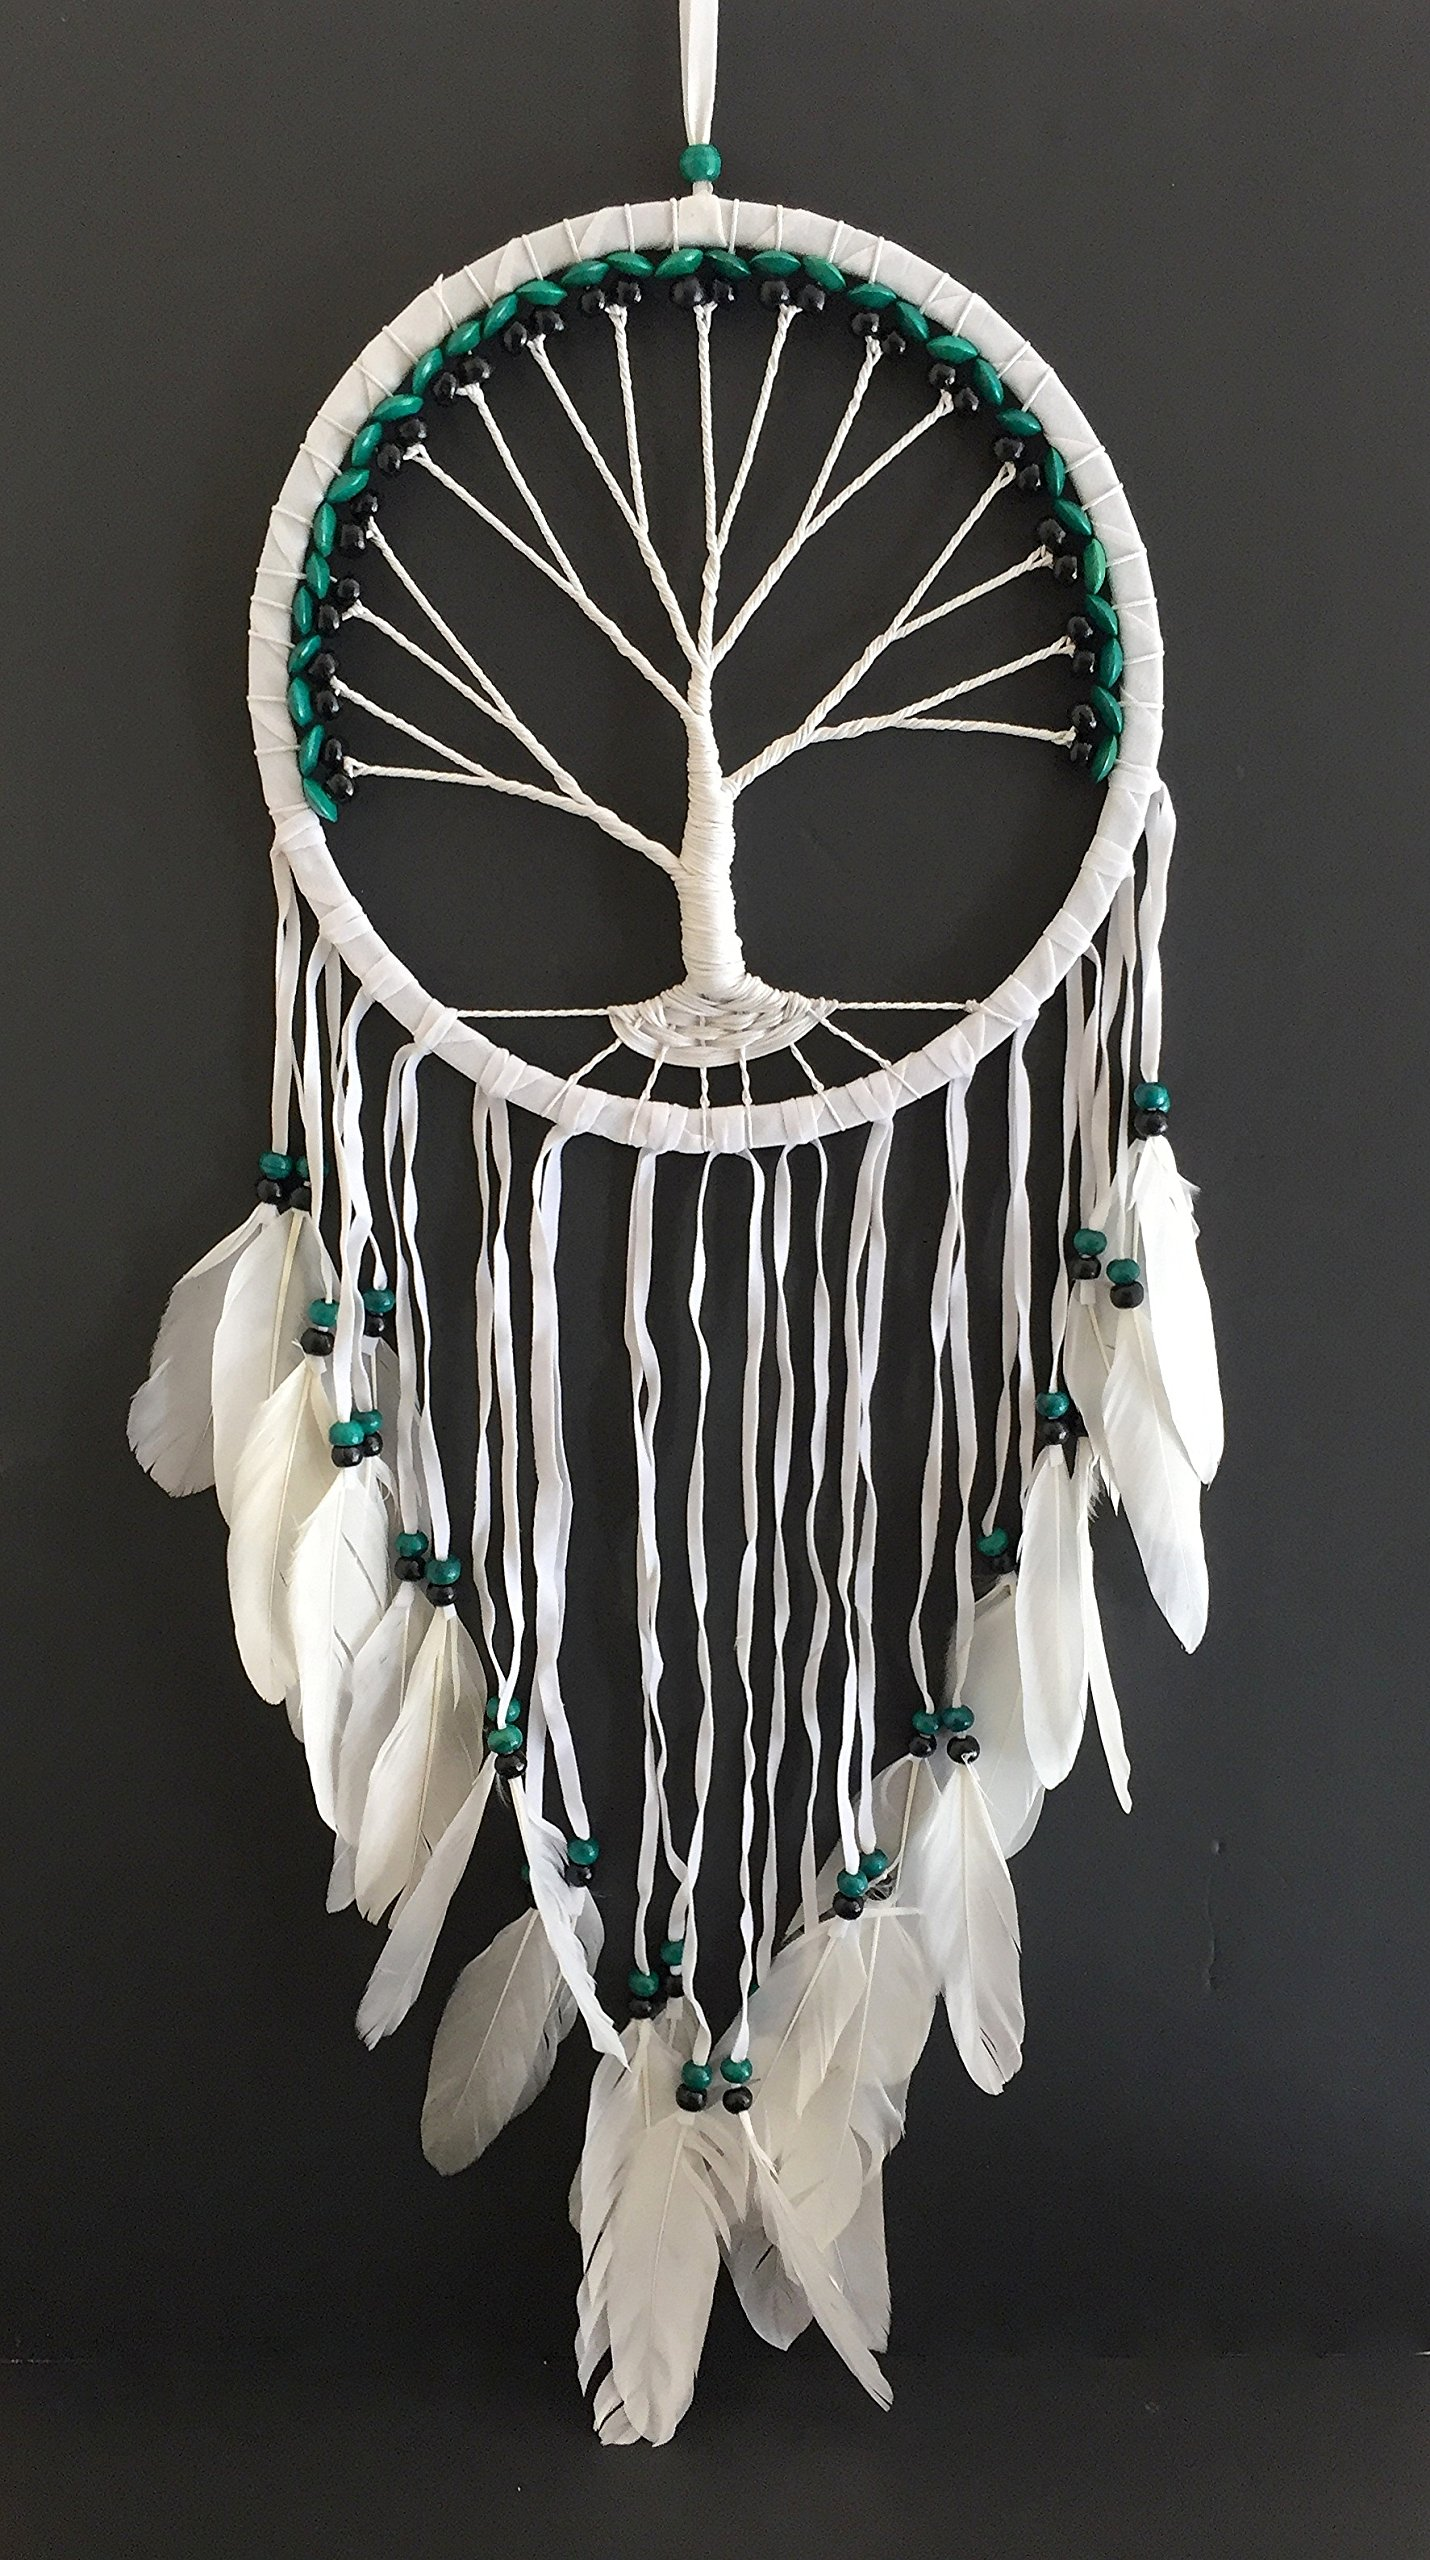 OMA Dream Catcher - TREE OF LIFE White Suede Dreamcatcher HAND CRAFTED With REAL Feathers & Wood Beads - LARGE SIZE - 36'' Long x 11'' Diameter BRAND (Green) by OMA